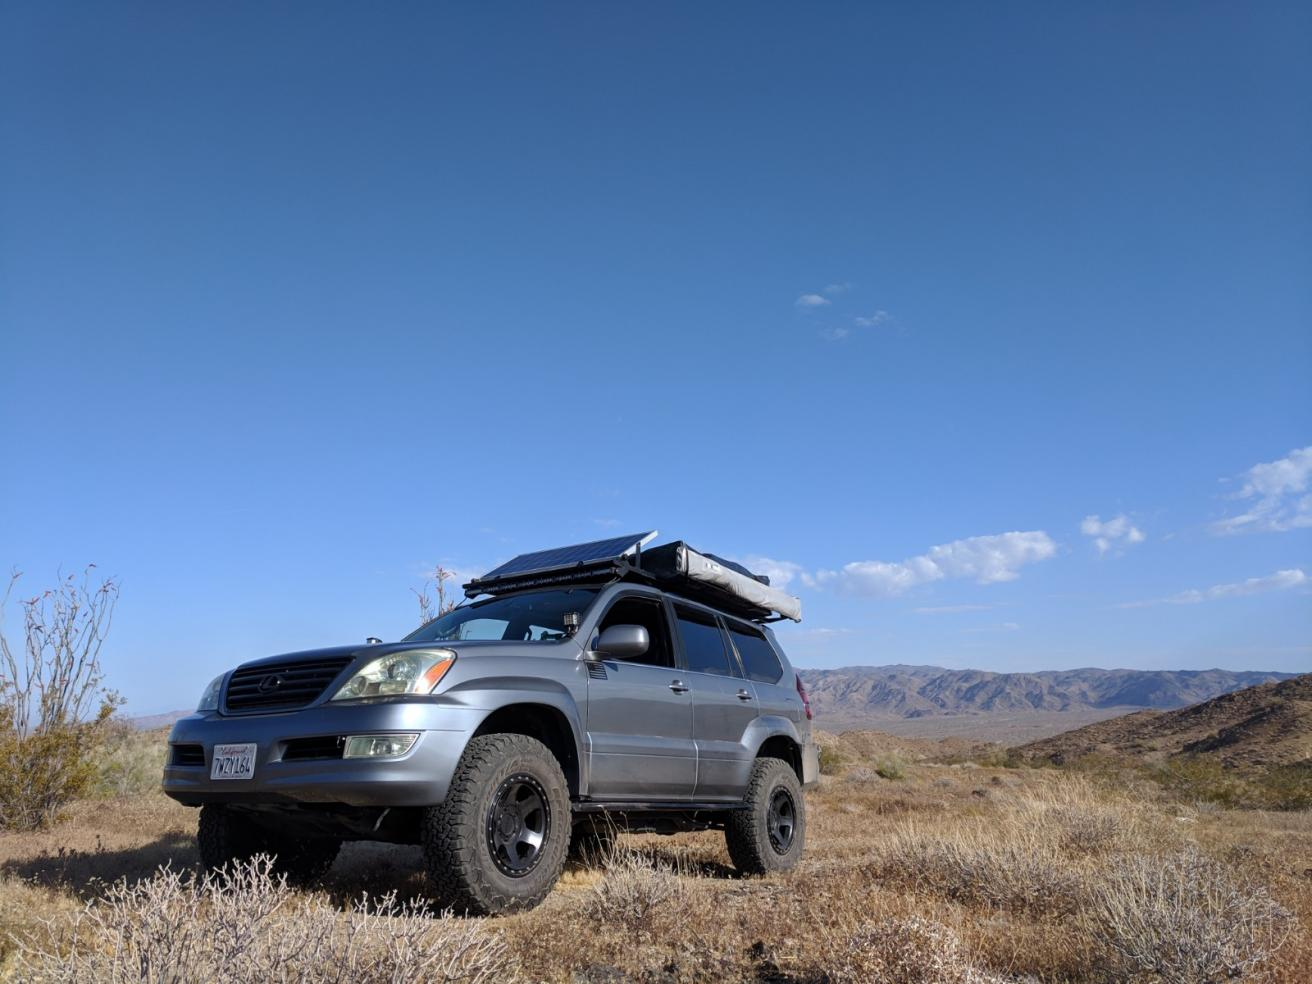 05 GX for sale in SoCal. Ready for the trails!-img_20190508_080530-jpg